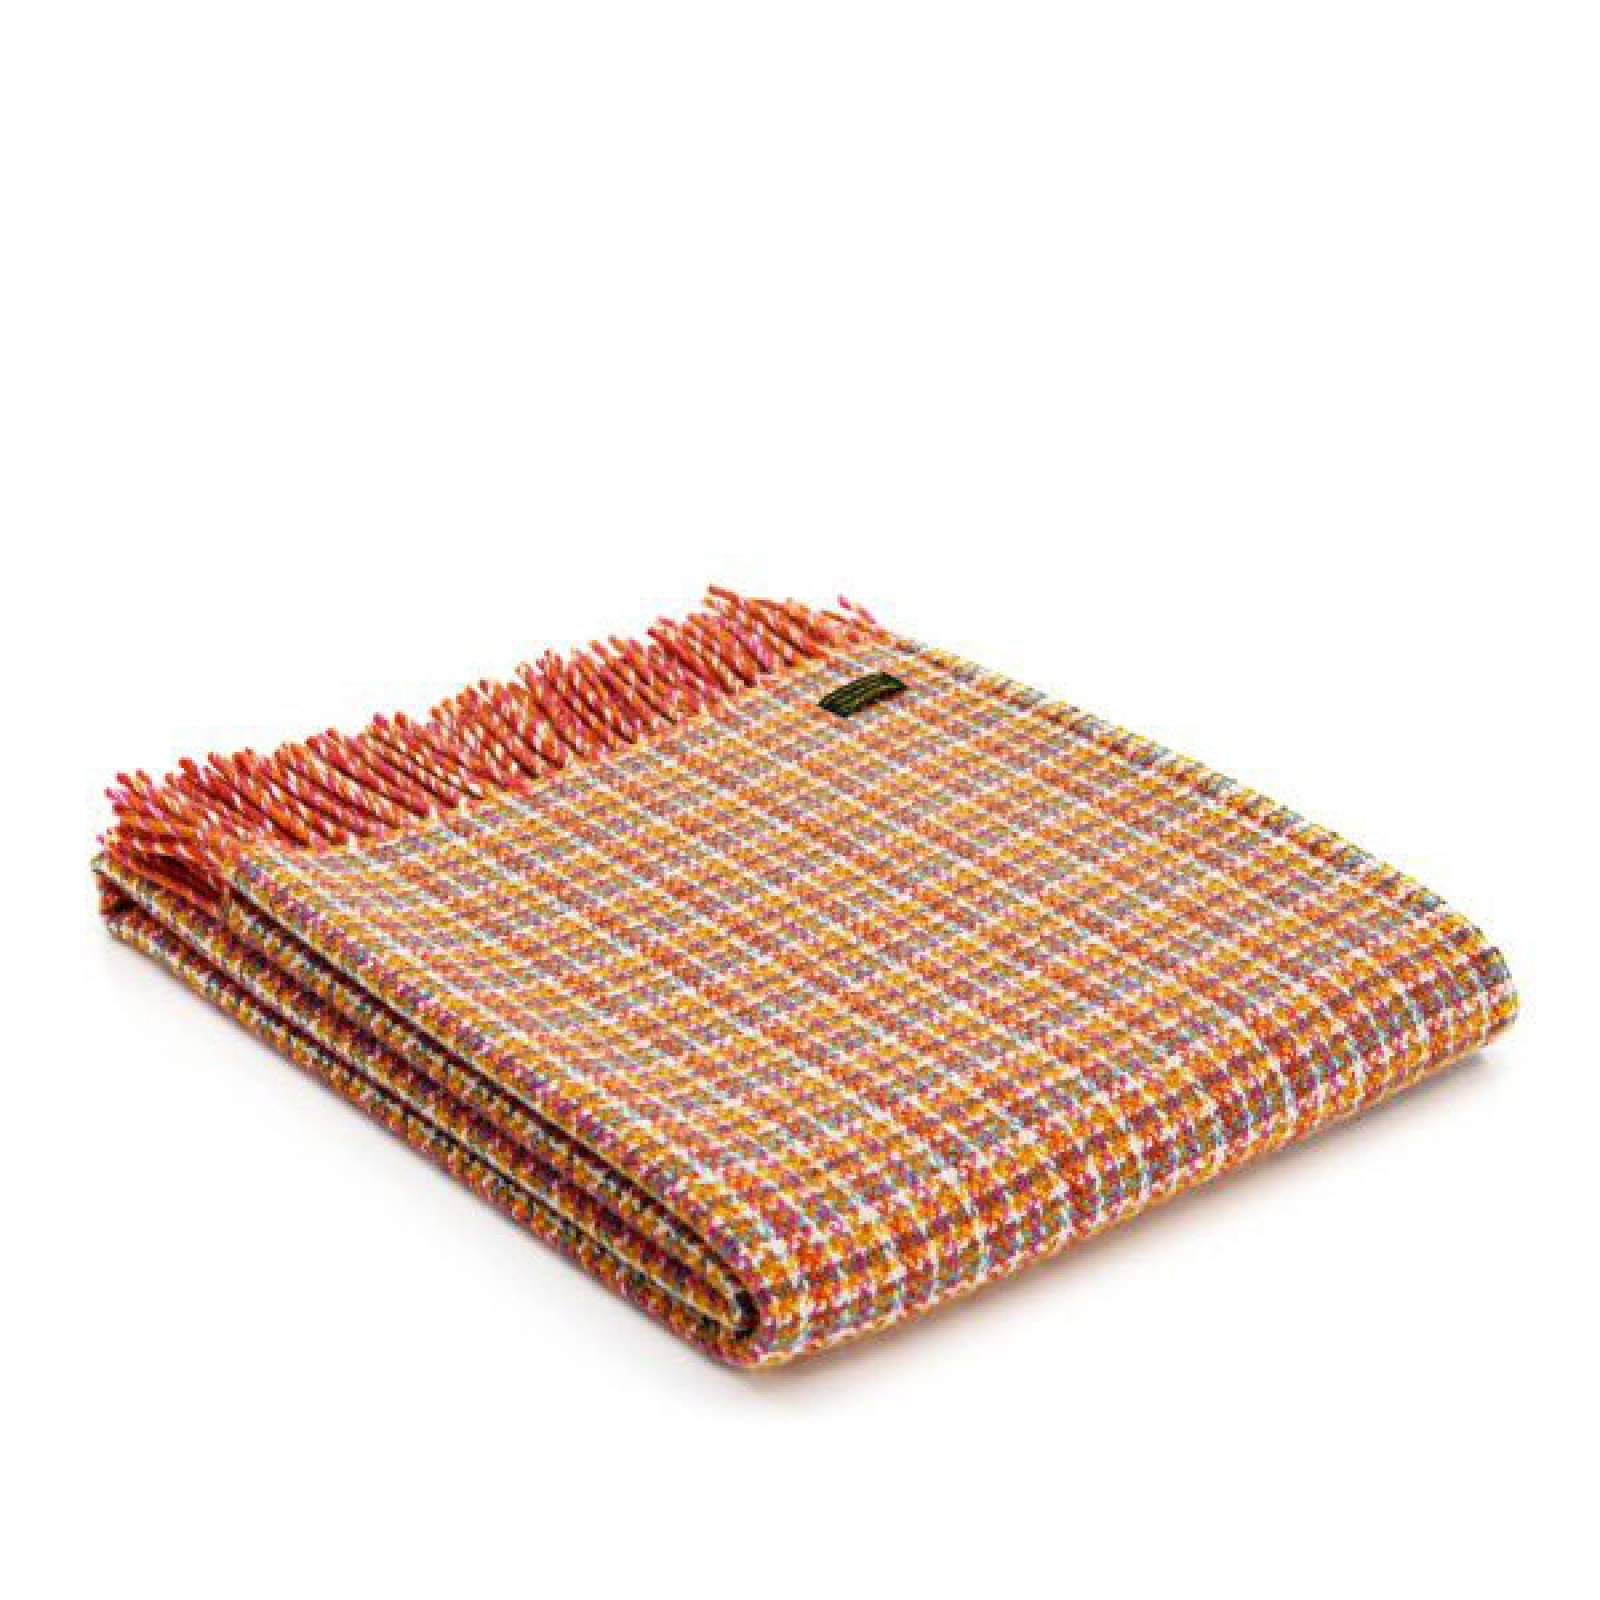 Festival Oasis Orange Fringed Picnic Blanket Carry Handle